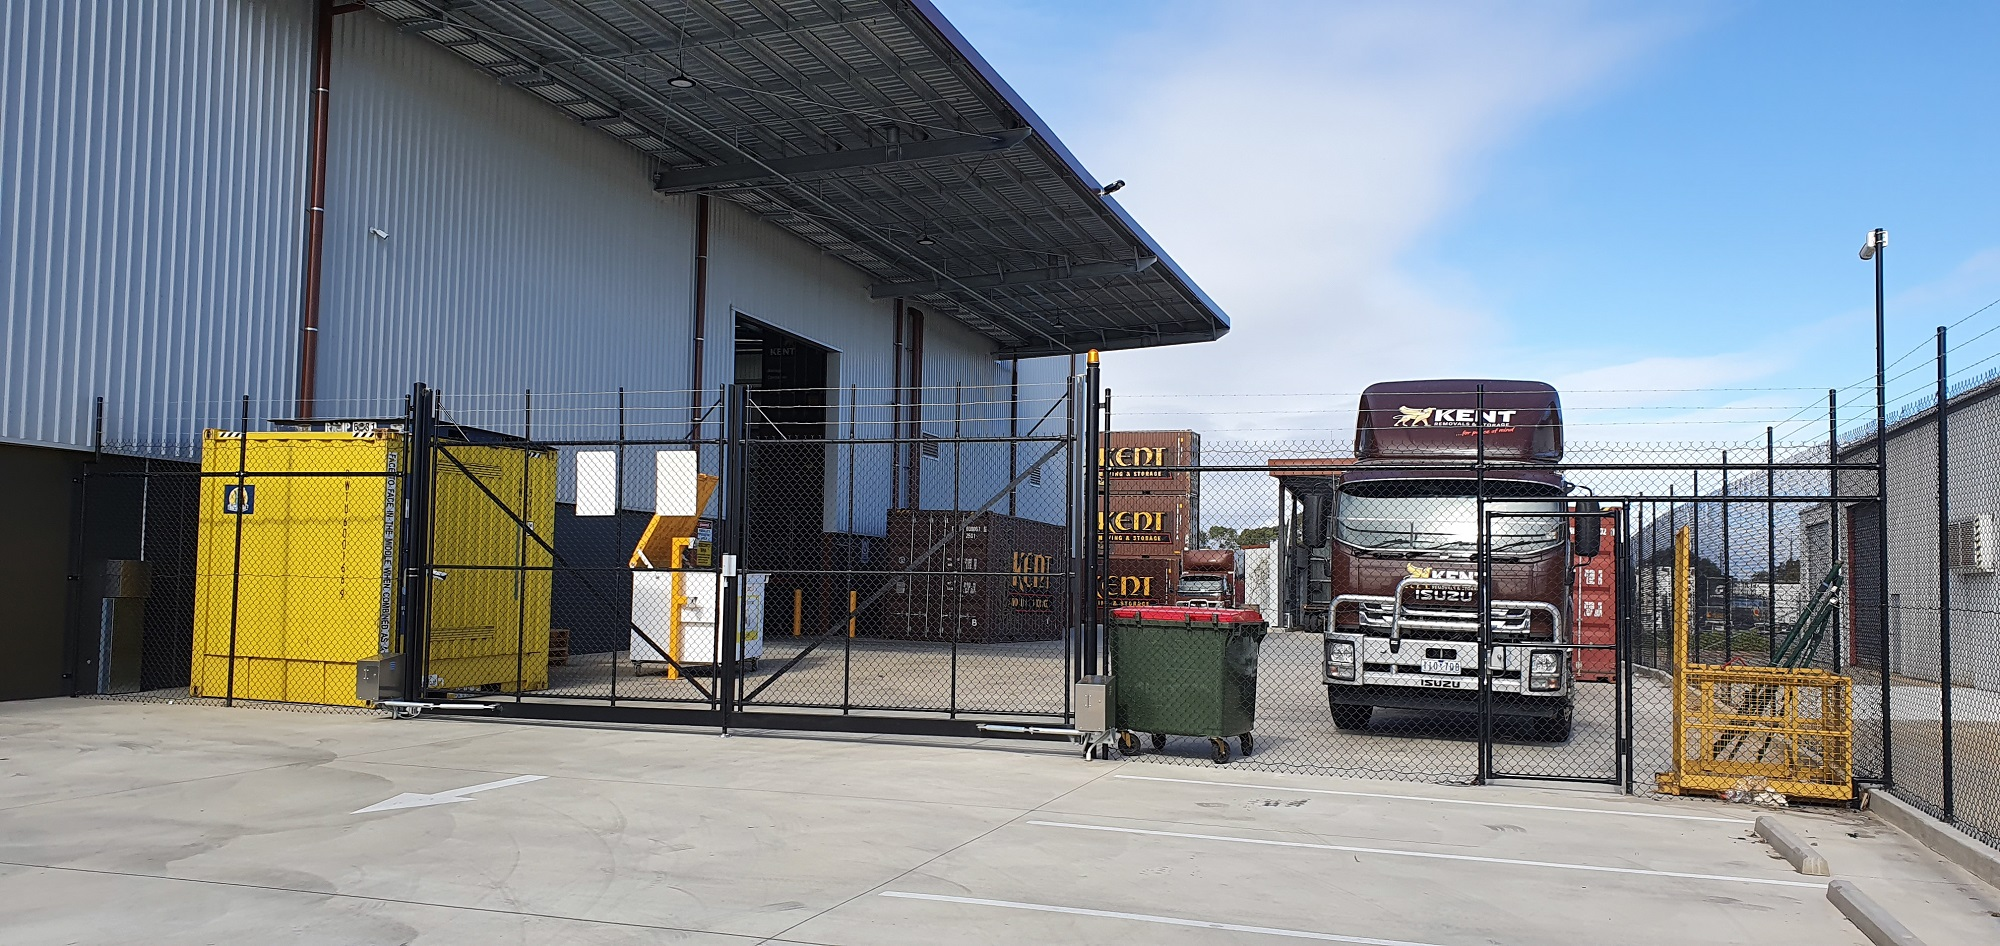 Commercial Fencing Adelaide Fence Centre Chain Mesh Security Fence Wingfield 6